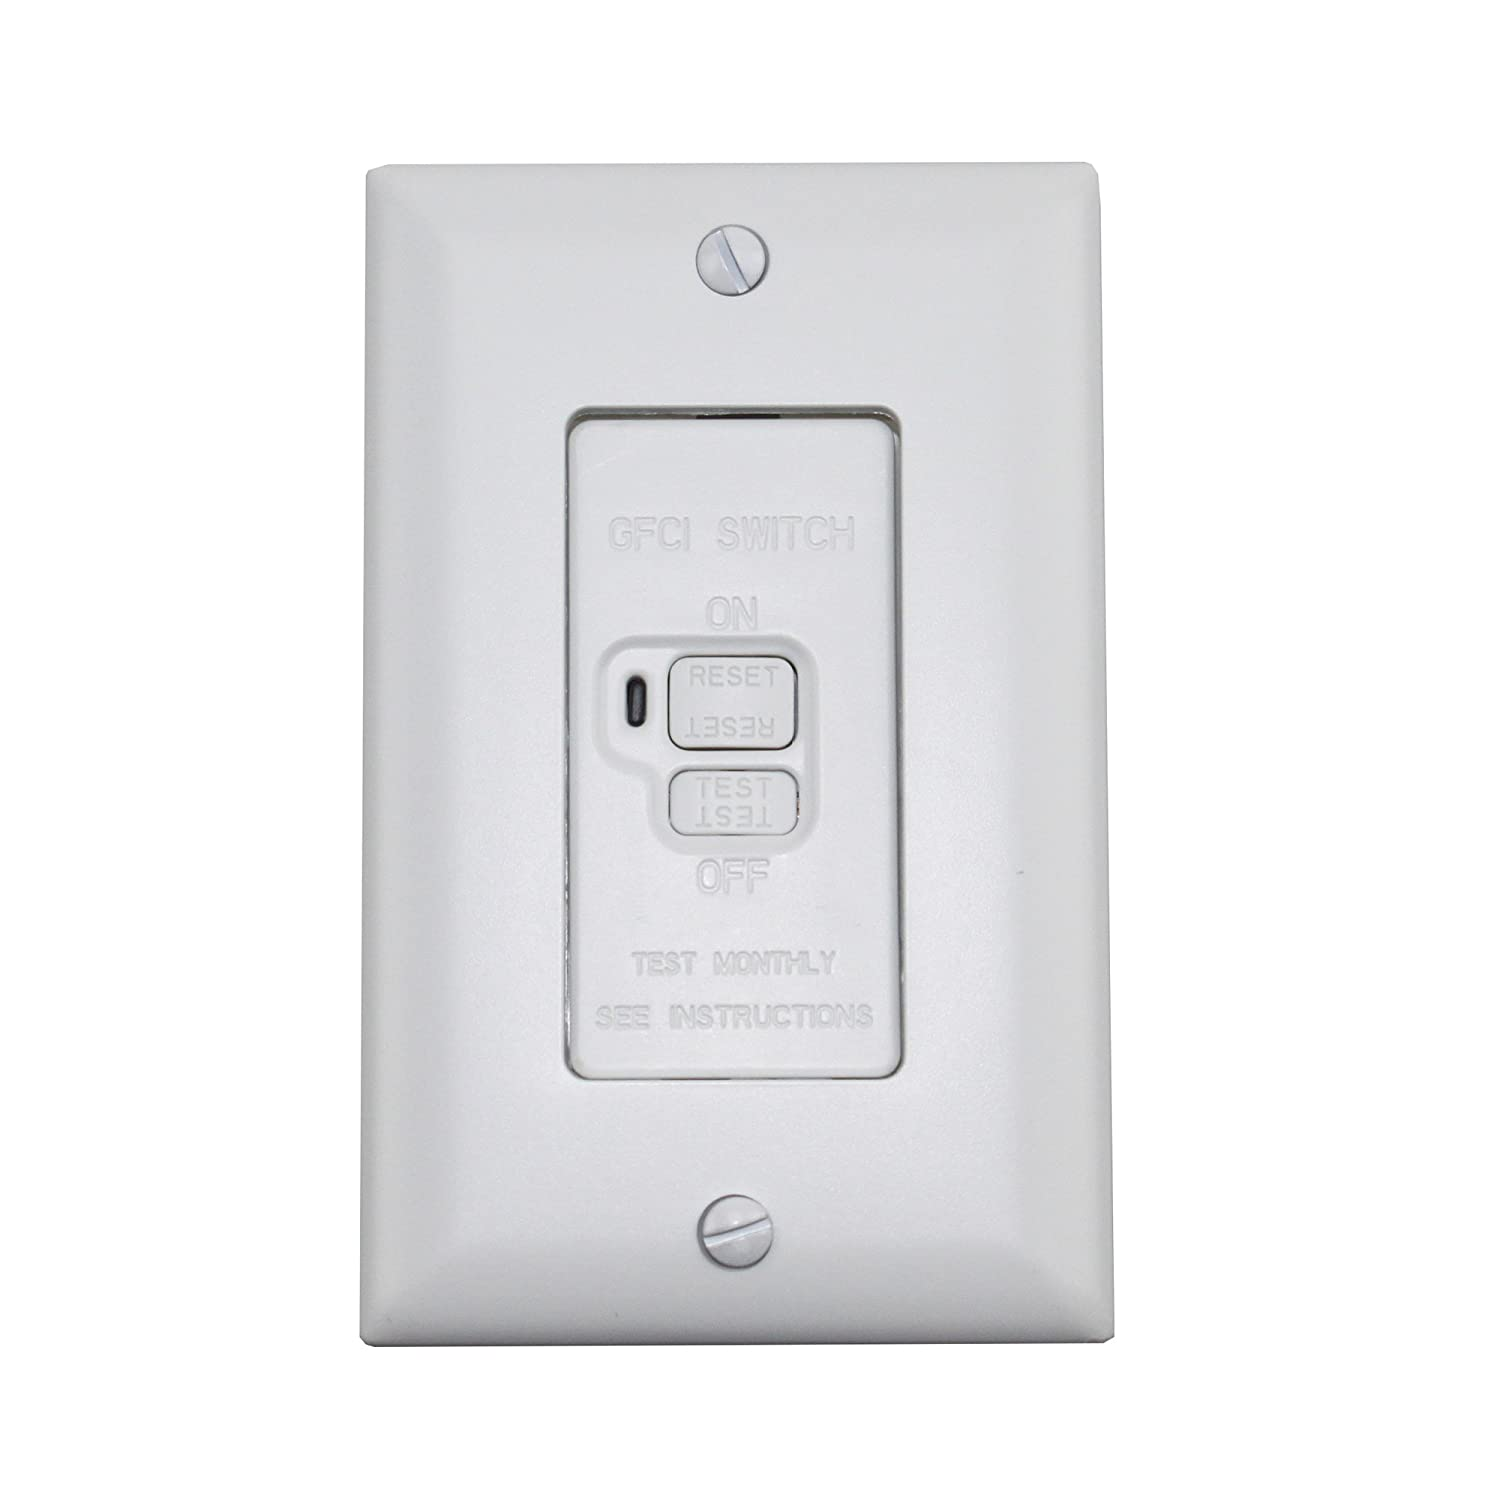 Pass Seymour 2085 W Gfci Dead Front Blank 20 Amp 125 Volt Feed Wiring Leviton Instructions White Electrical Switches